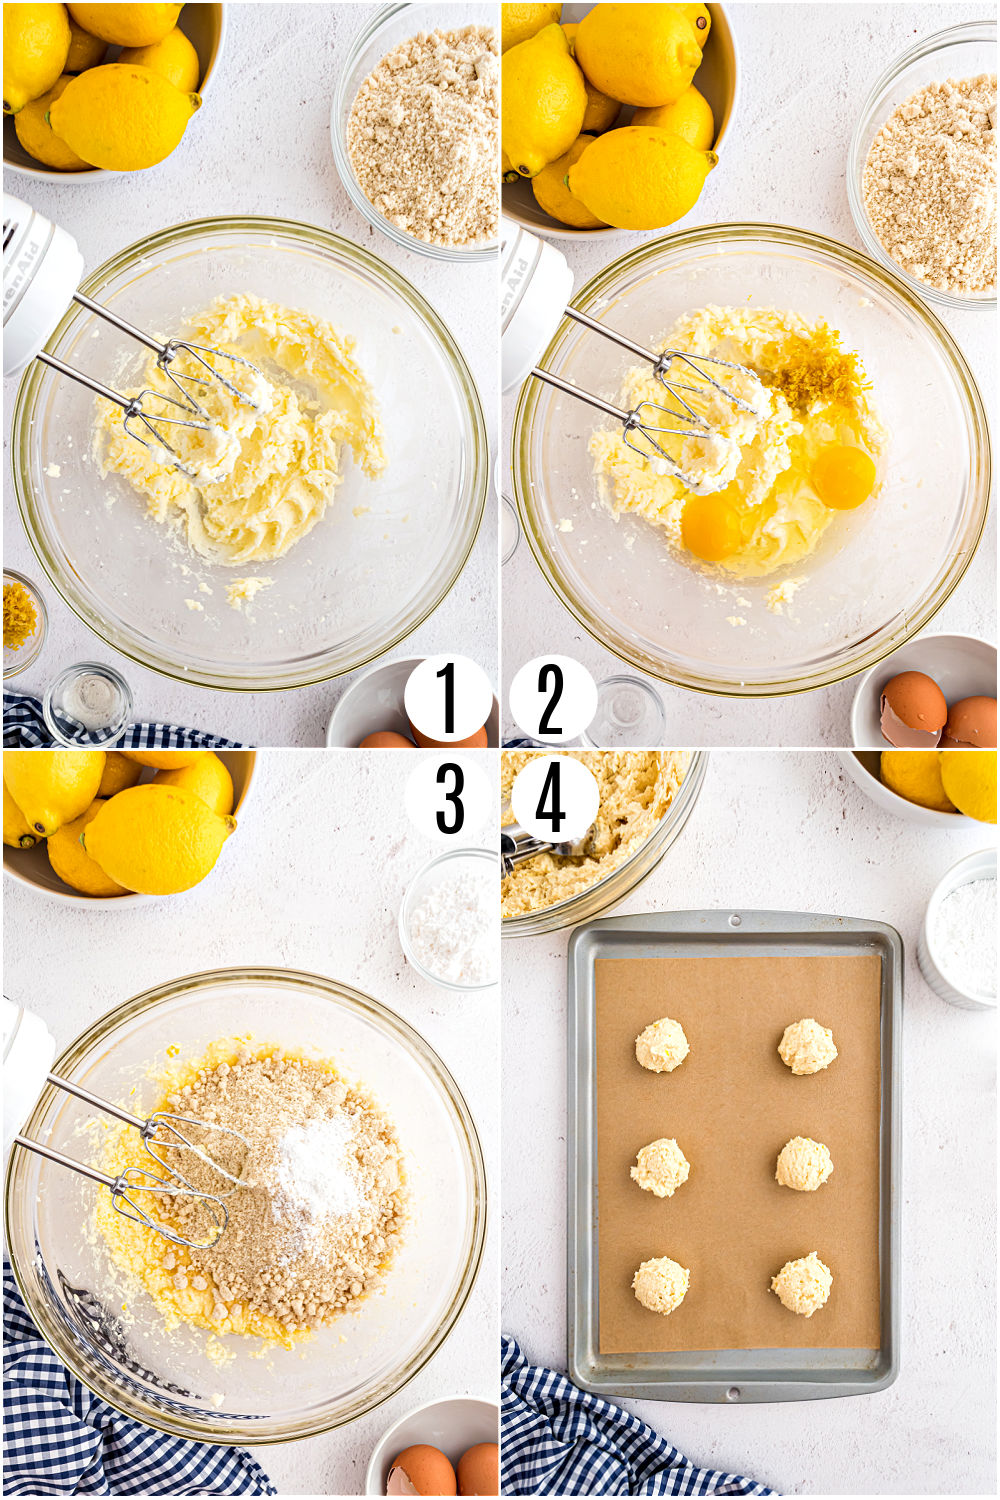 Step by step photos showing how to make sugar free lemon cookies.